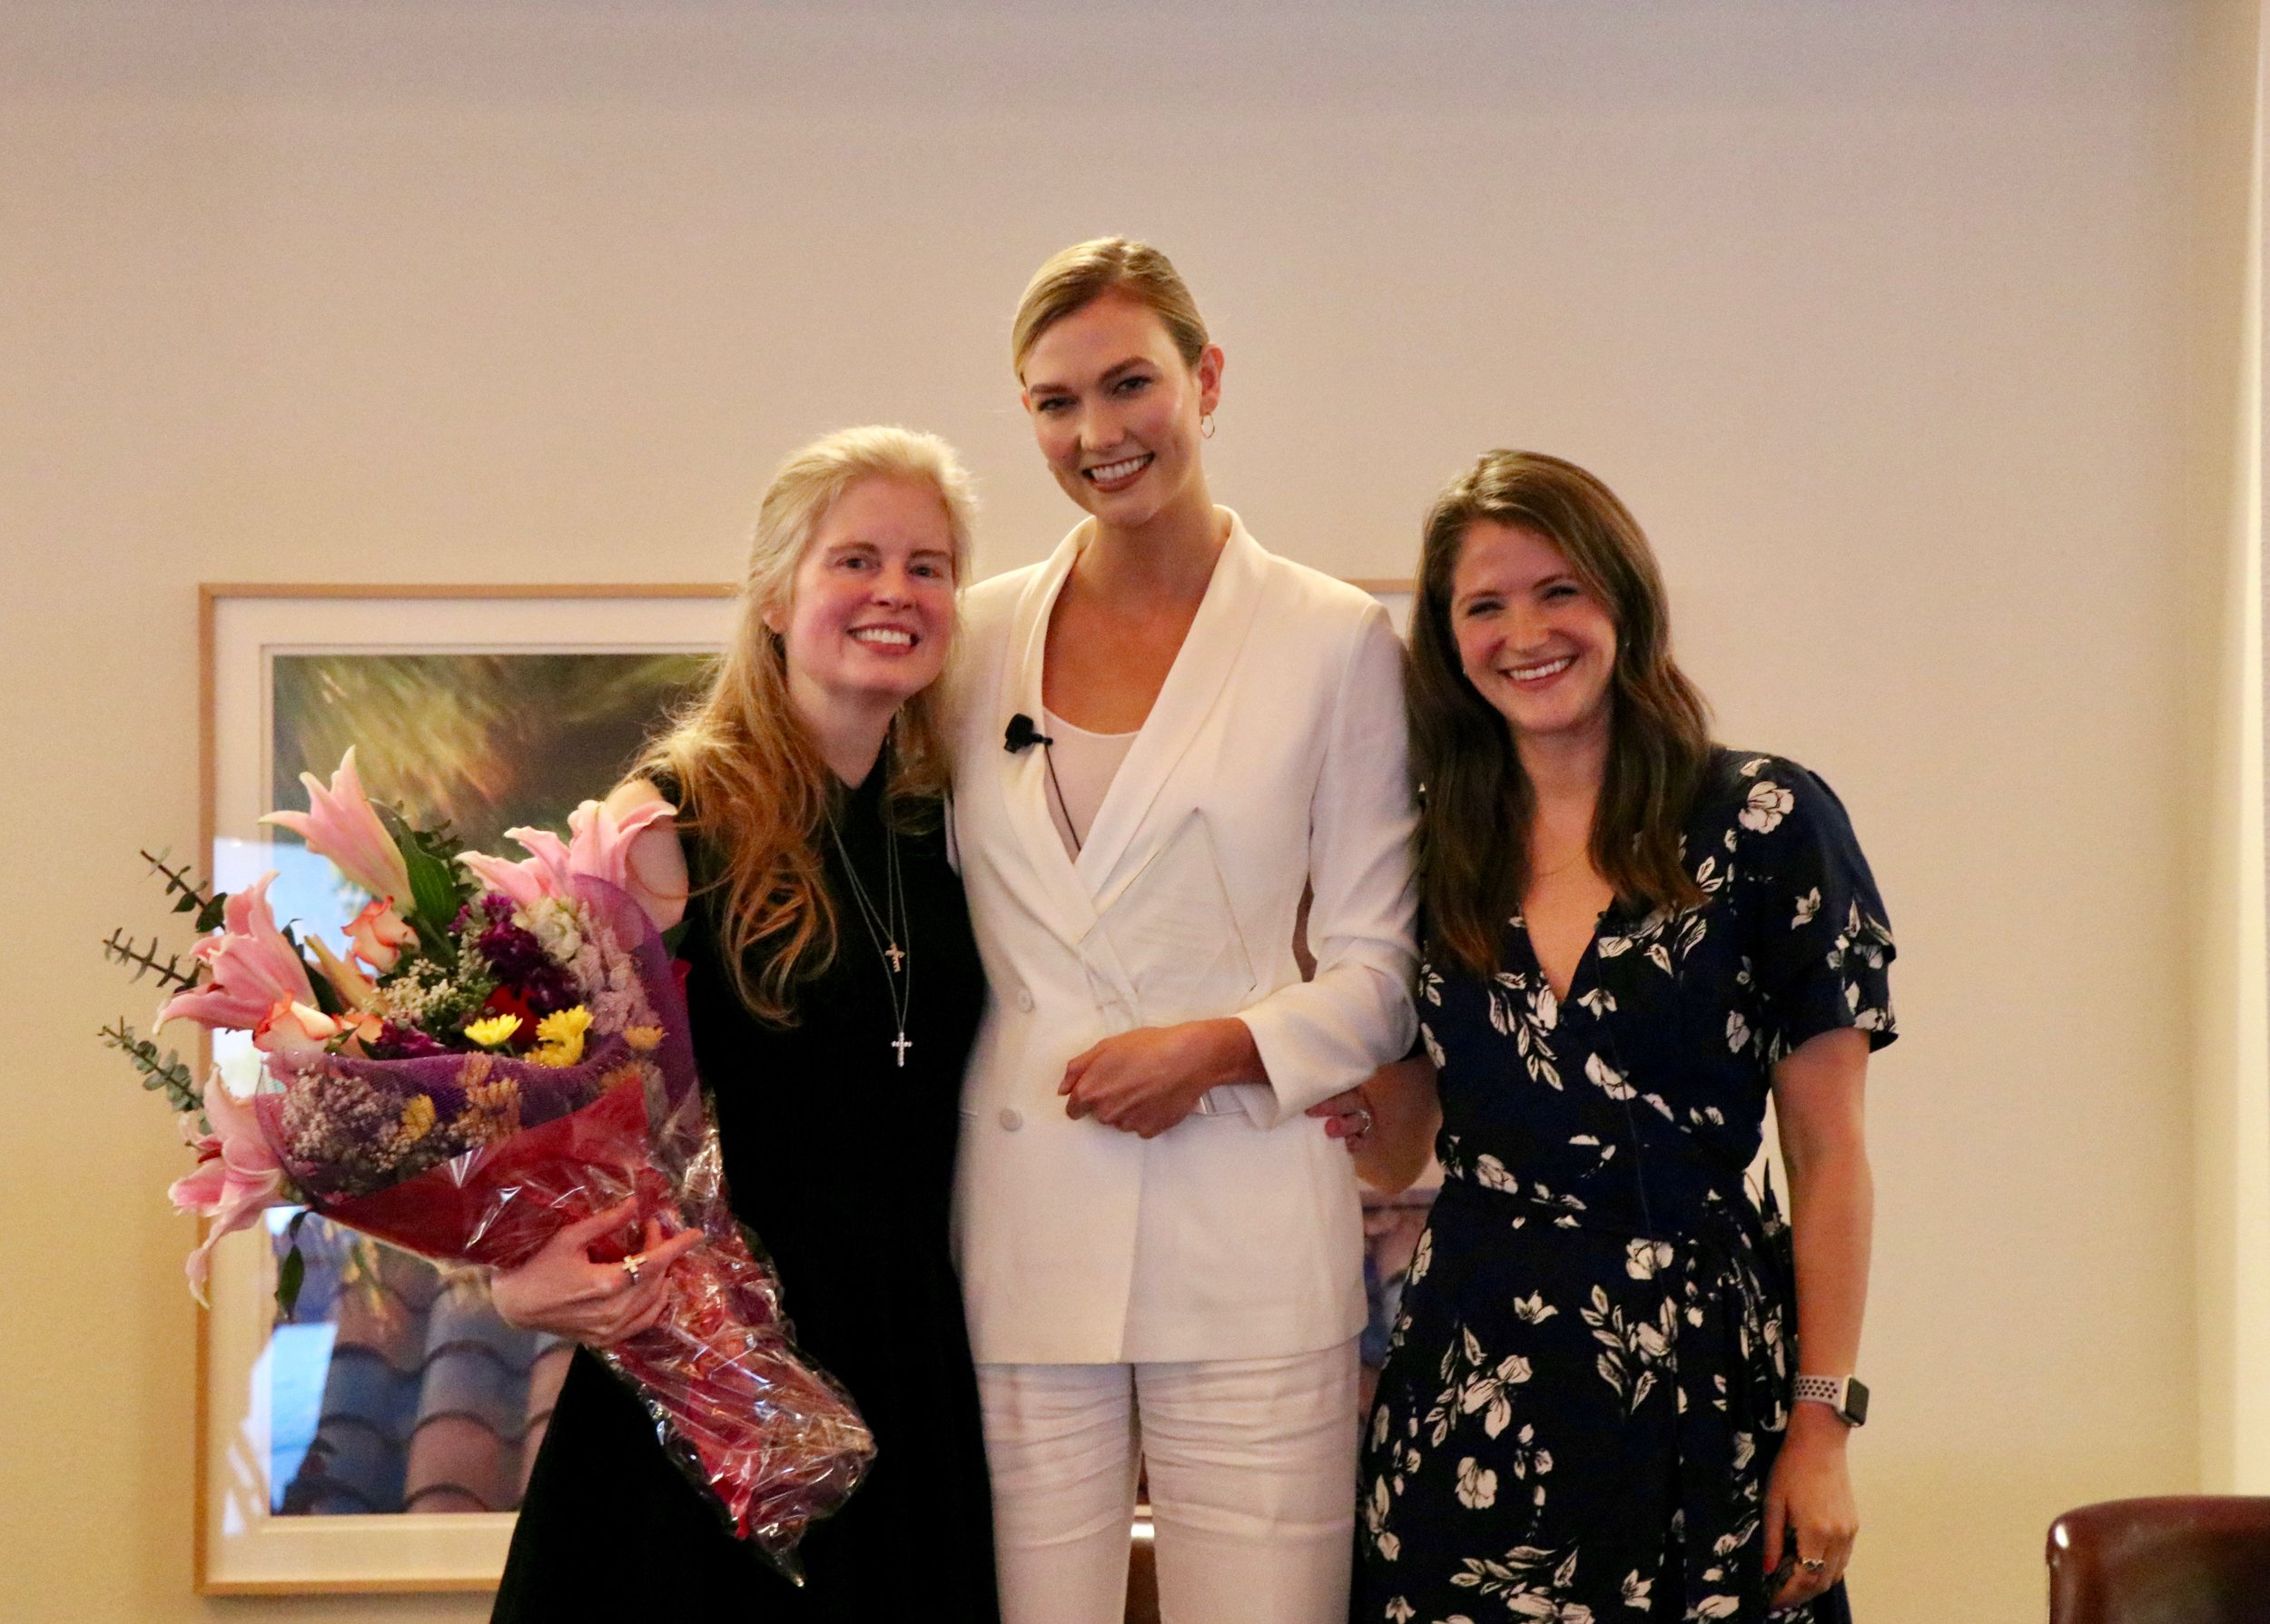 """Kode with Klossy has been this amazing opportunity to help these other young women have access to these skills. . . We just open the door for them."" - Karlie Kloss on Kode with Klossy and empowering the next generation of women leaders"